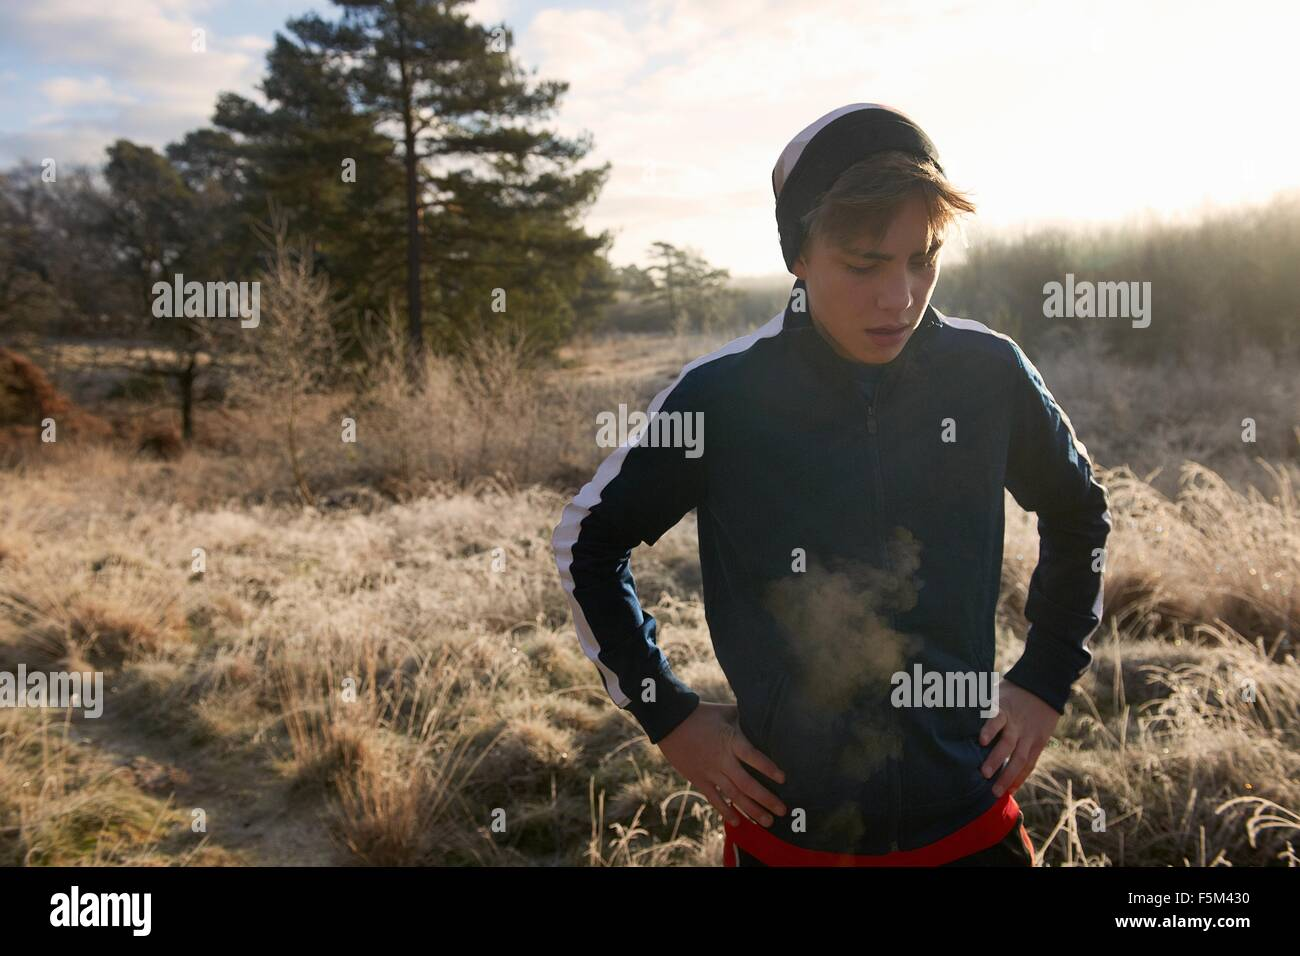 Teenage boy on frosty grassland, visible breath, hands on hips looking down - Stock Image